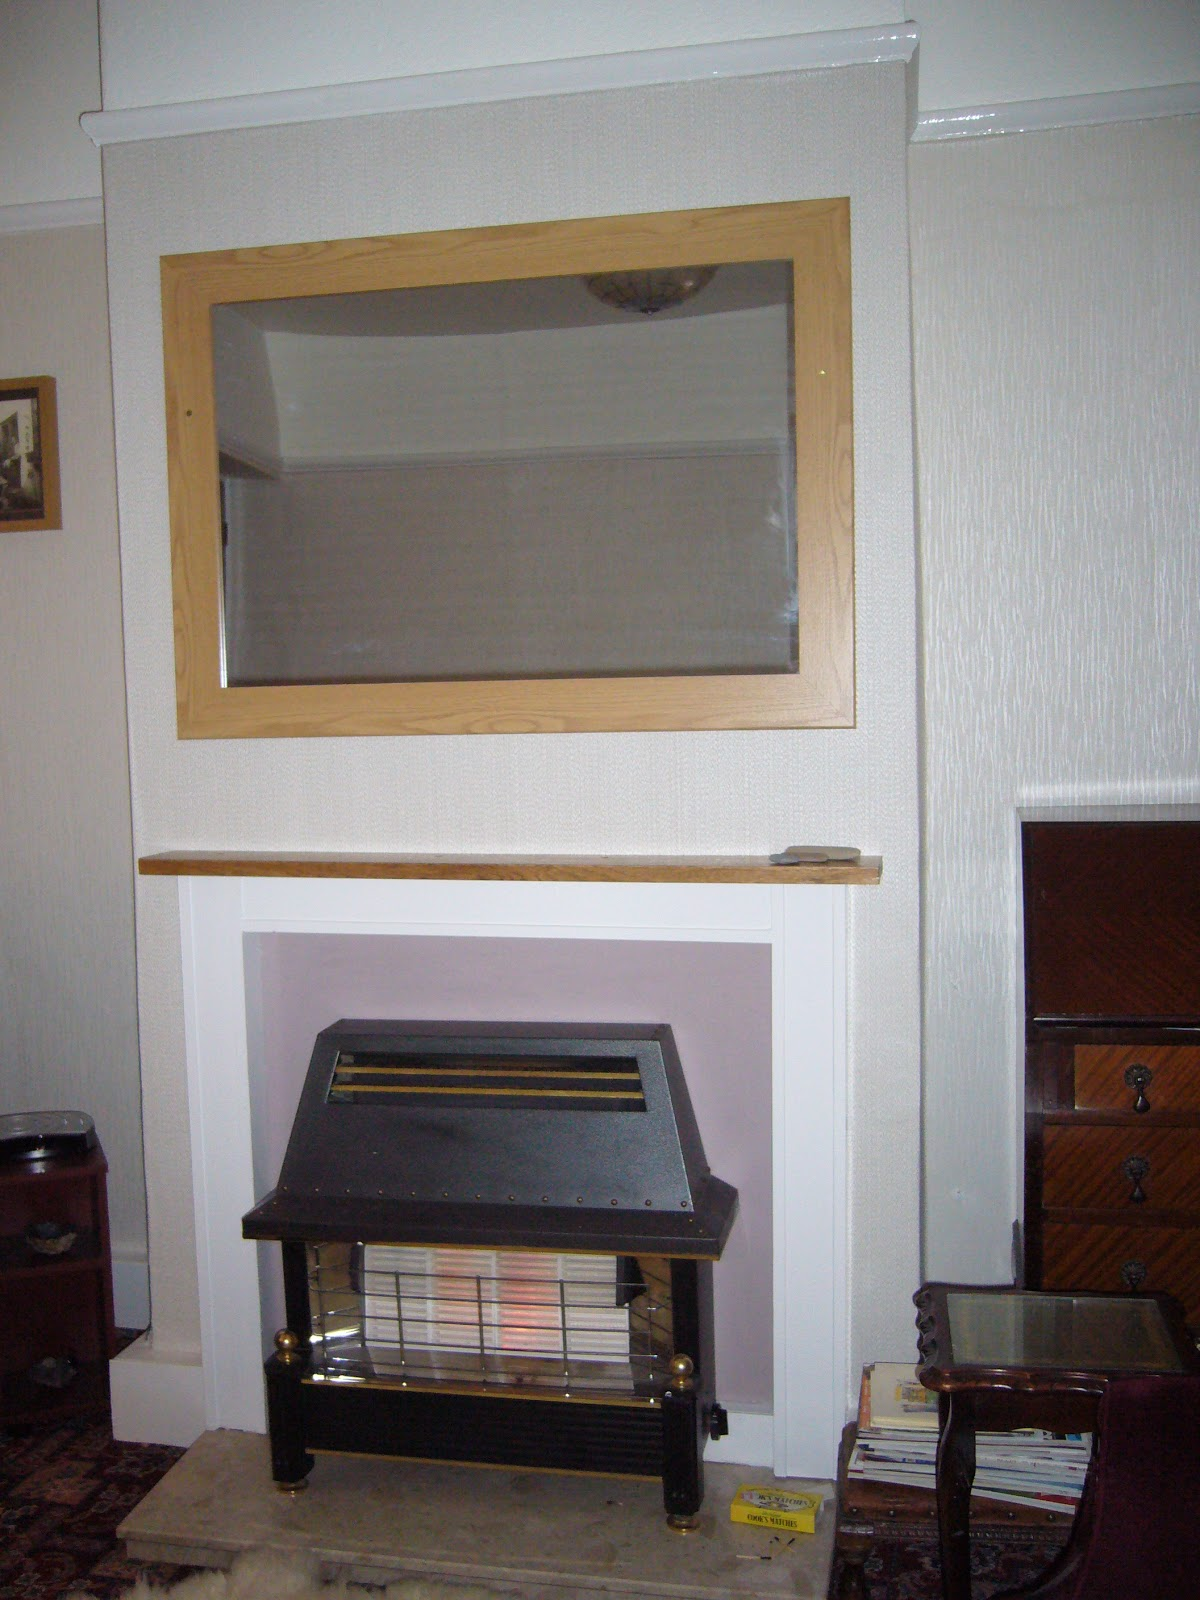 How To Wallpaper A Chimney Breast How To Wallpaper A Chimney Breast